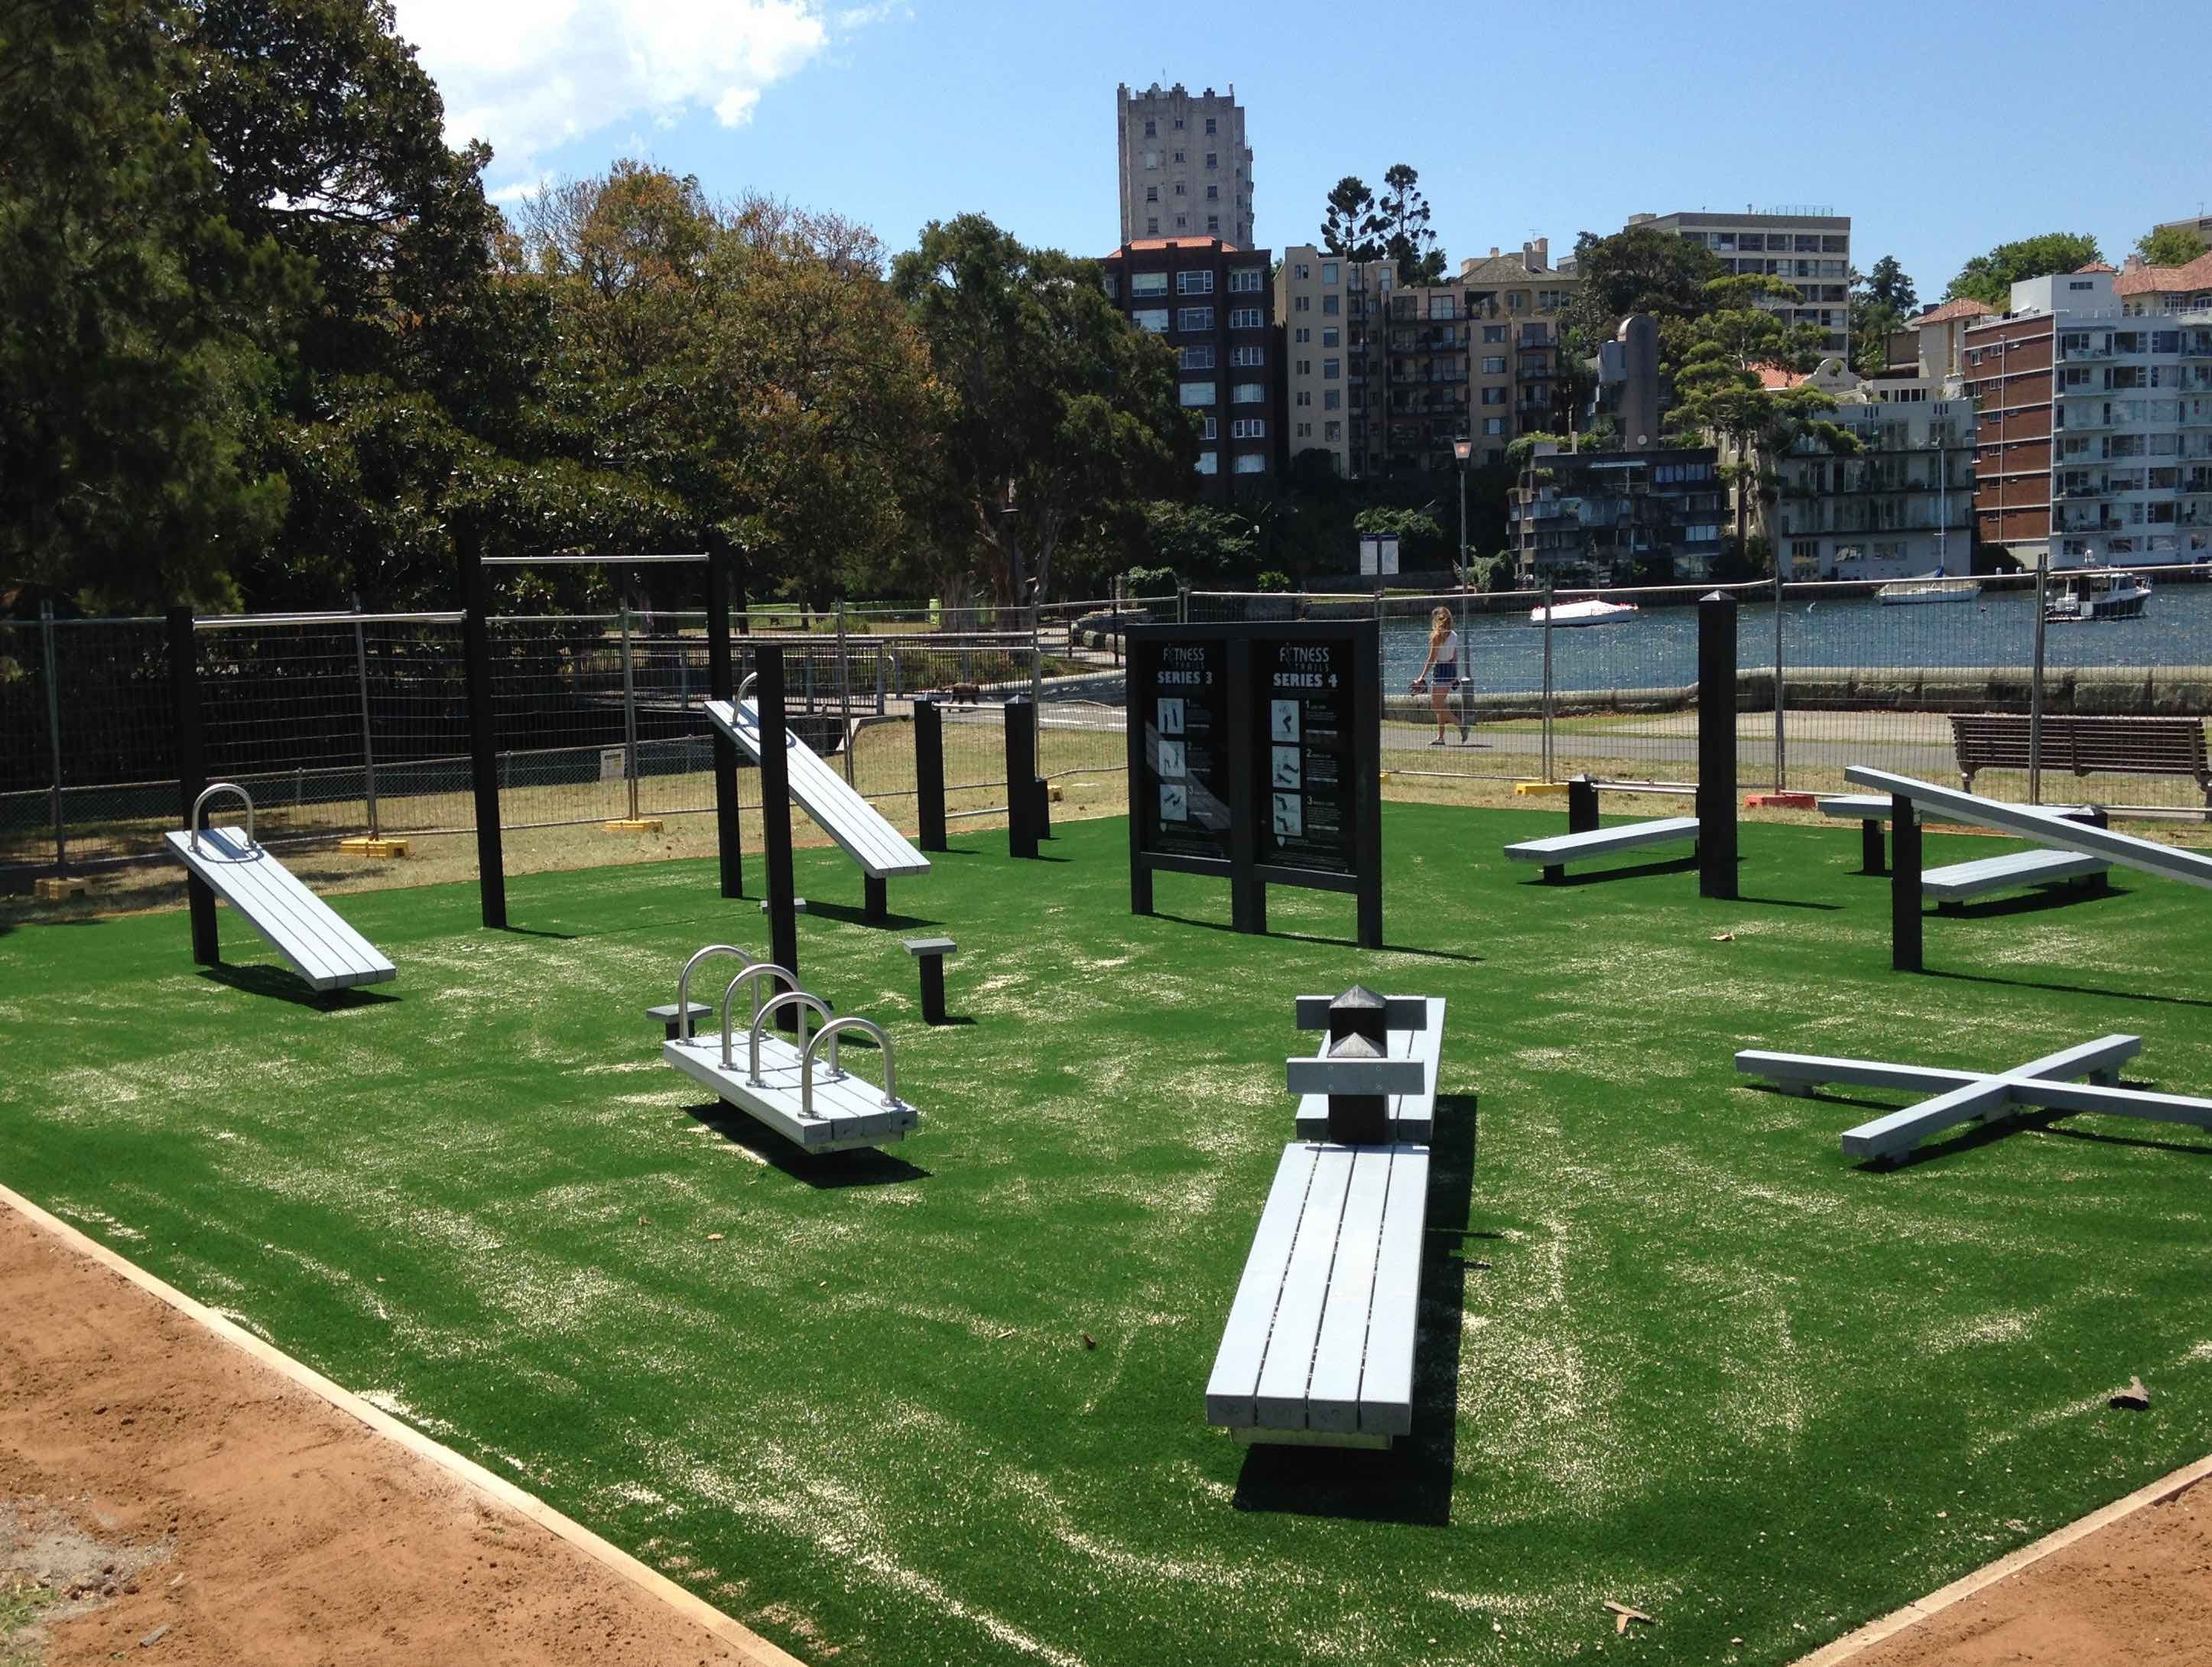 Rushcutters Bay Park: outdoor fitness station